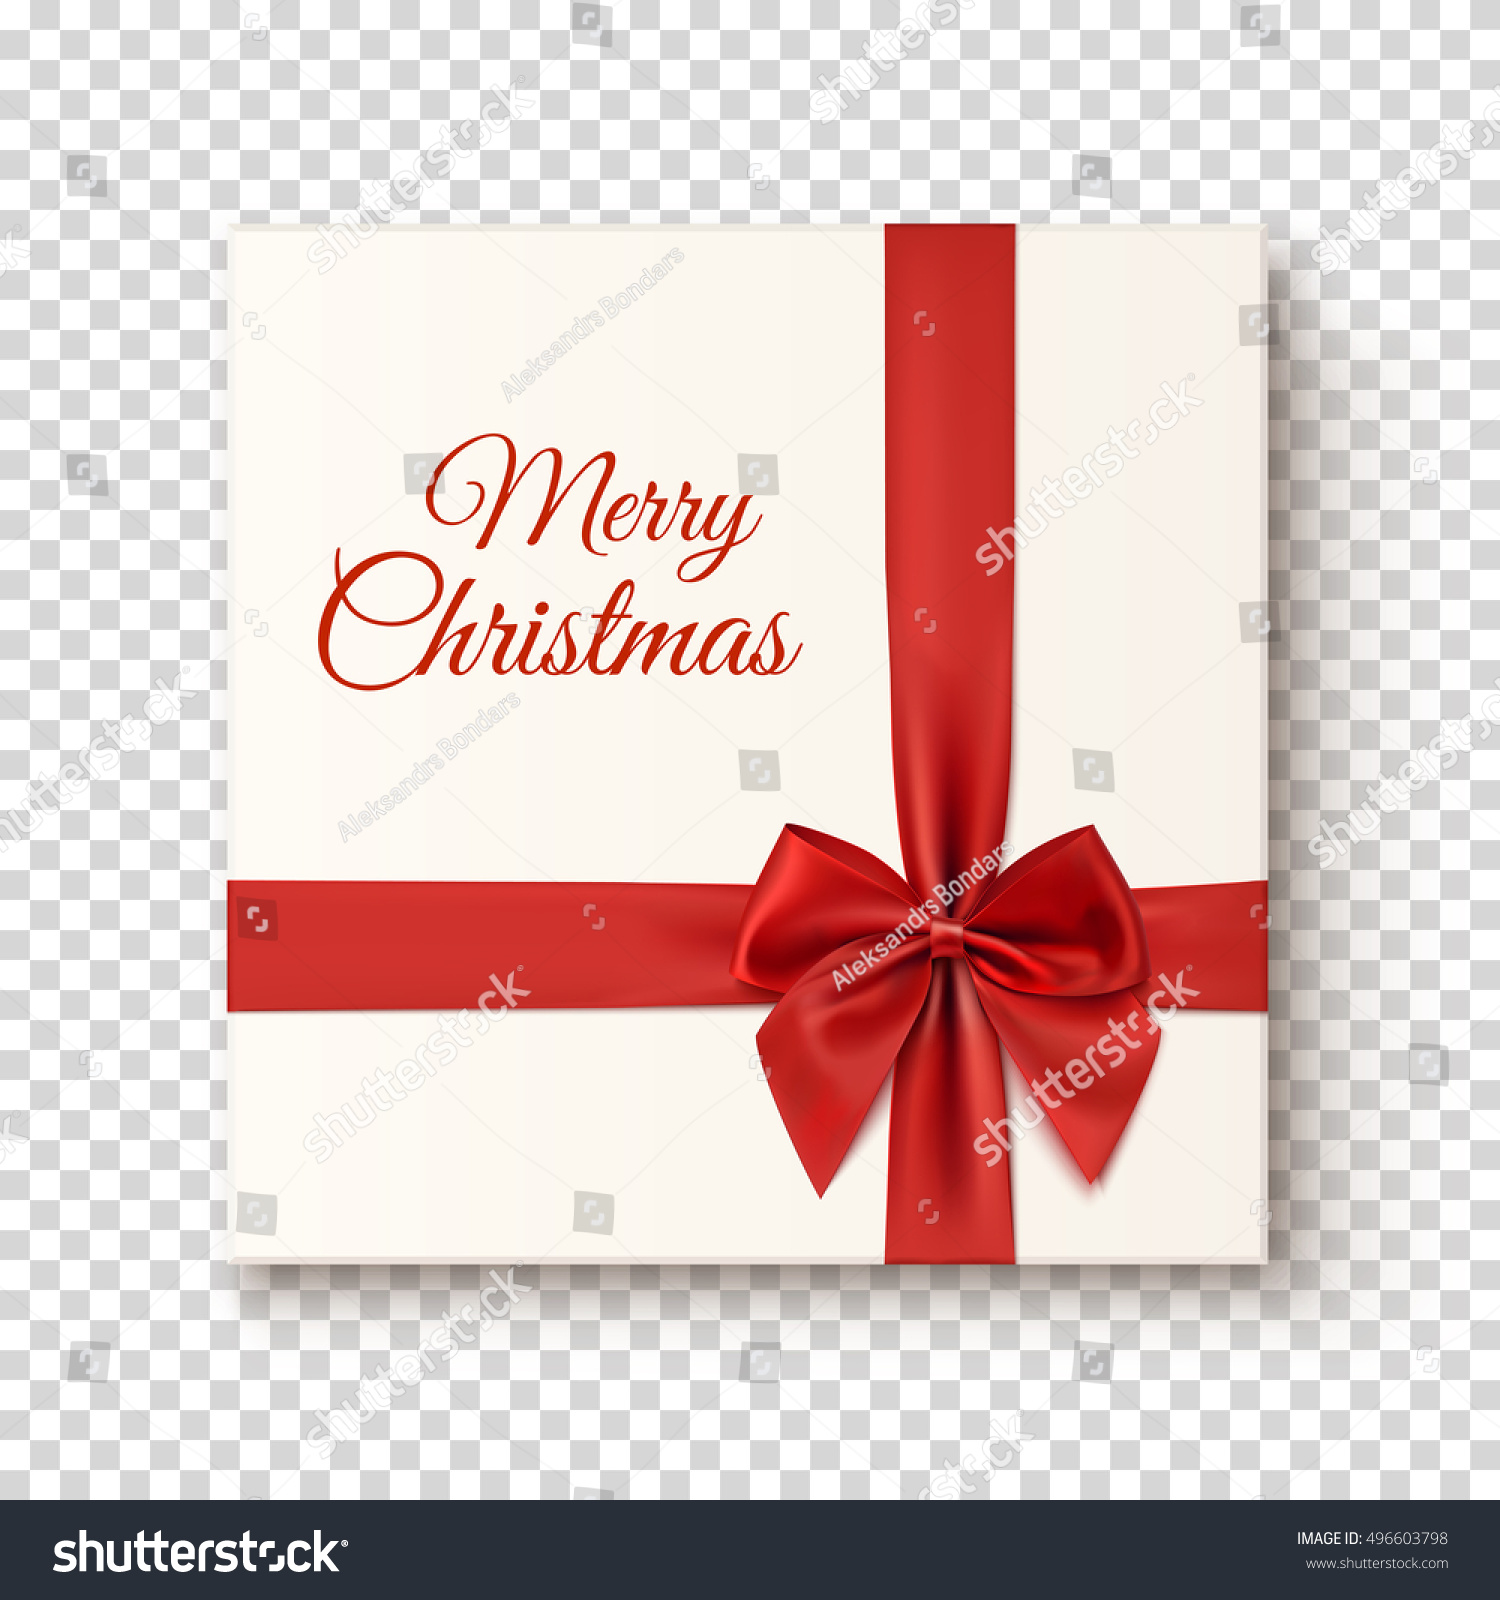 Merry christmas greeting card template realistic stock vector merry christmas greeting card template realistic gift icon on transparent background top view kristyandbryce Image collections